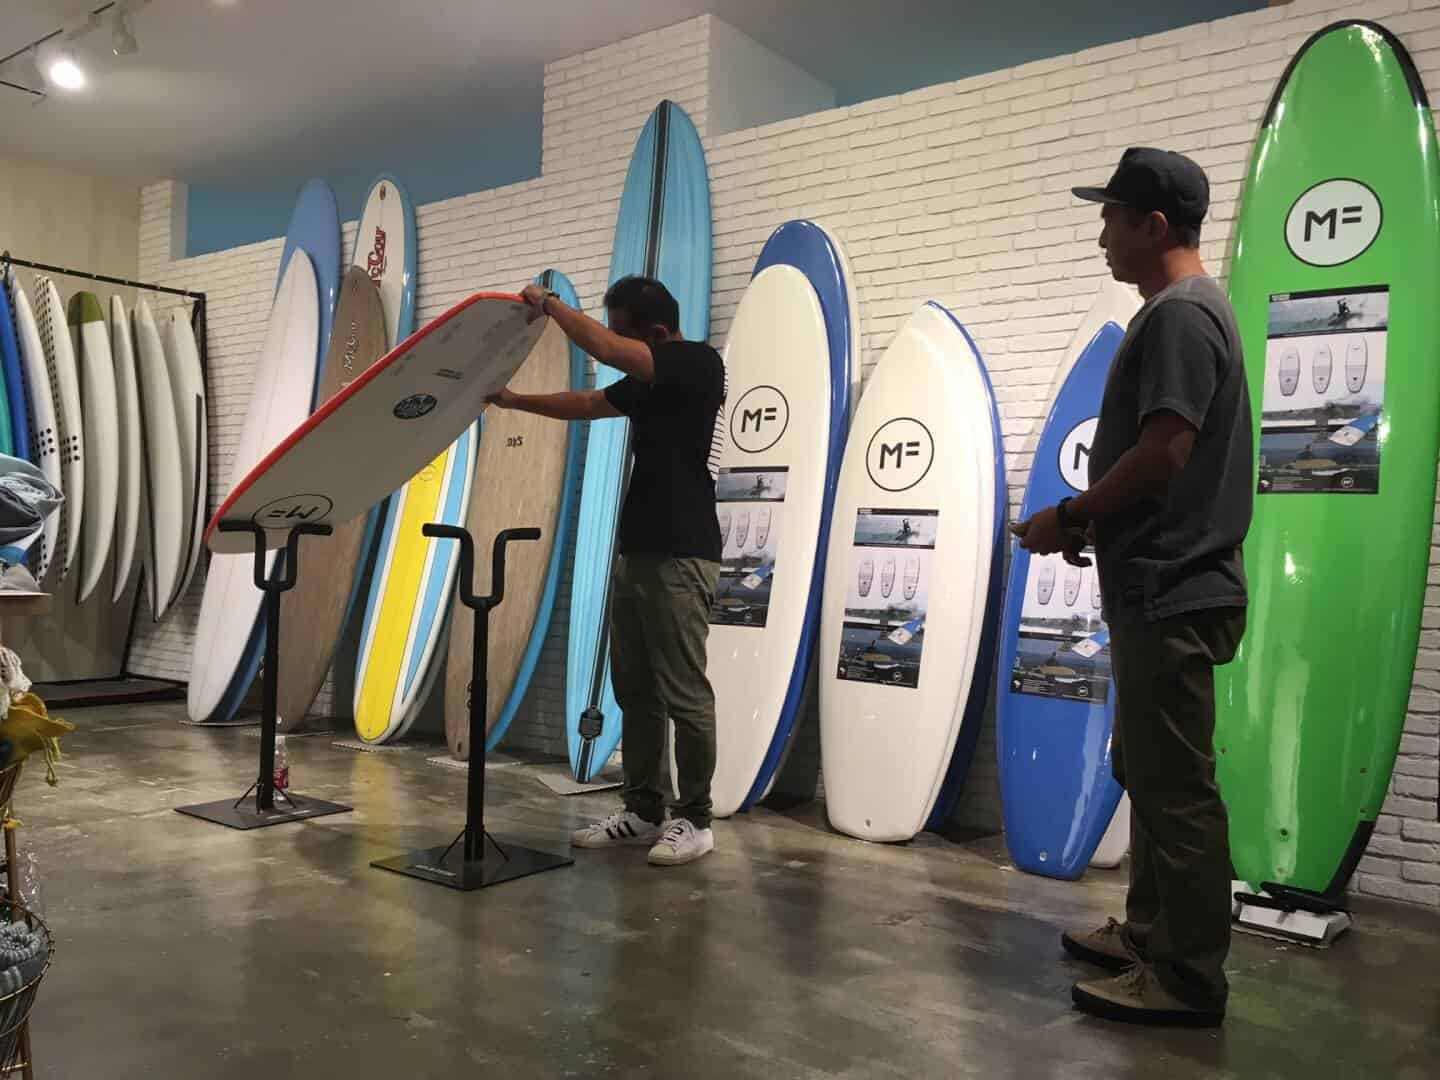 Mick fanning soft board